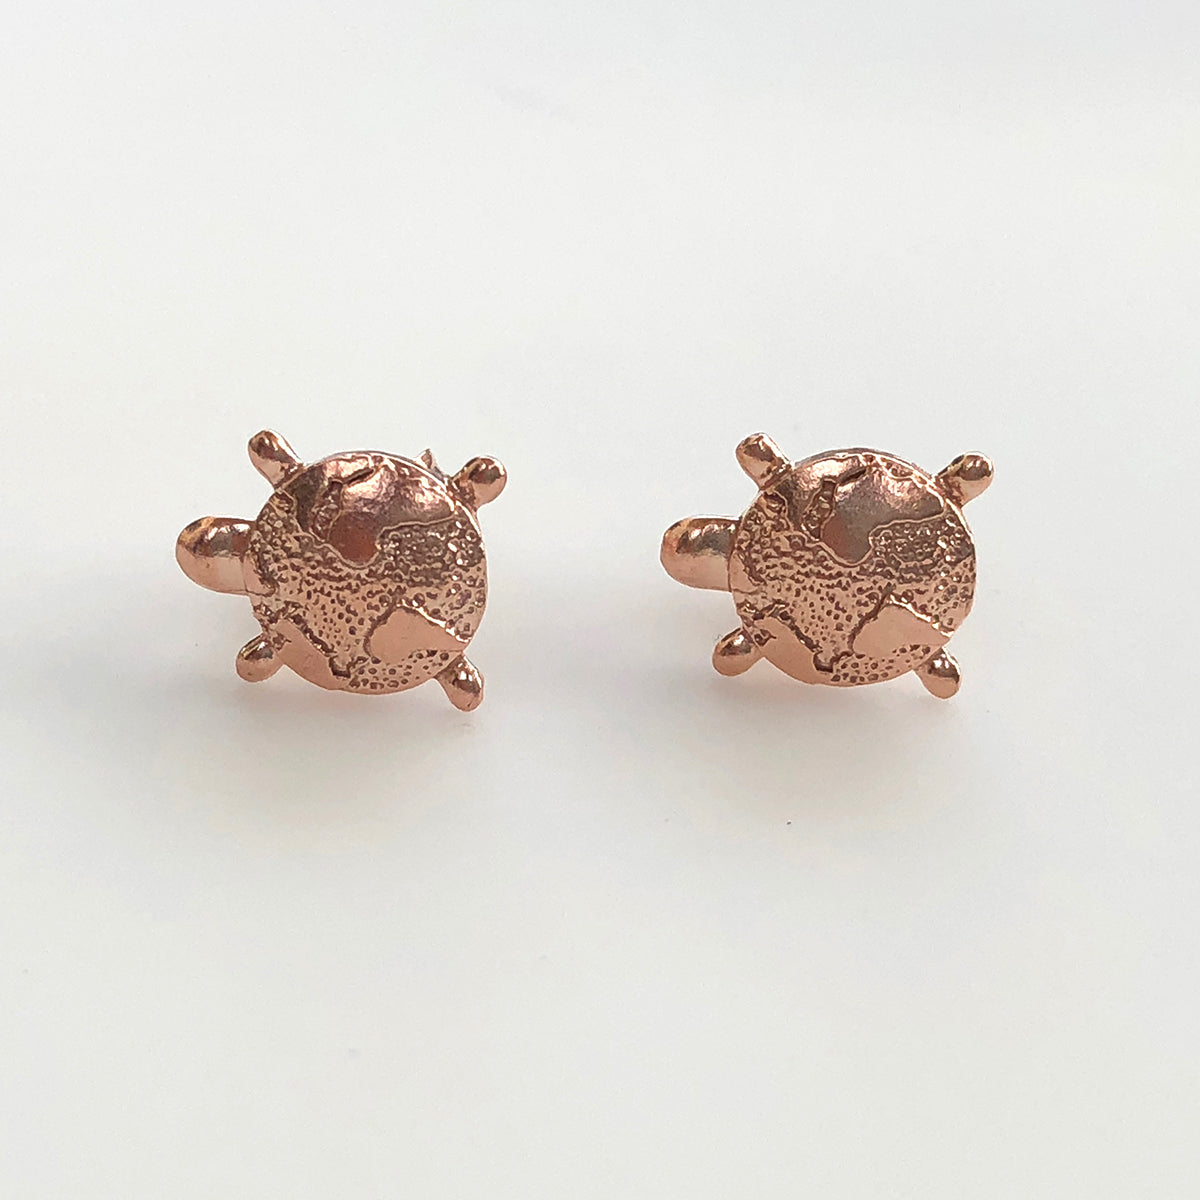 silver silverchelles stud earrings turtle com sterling in shop